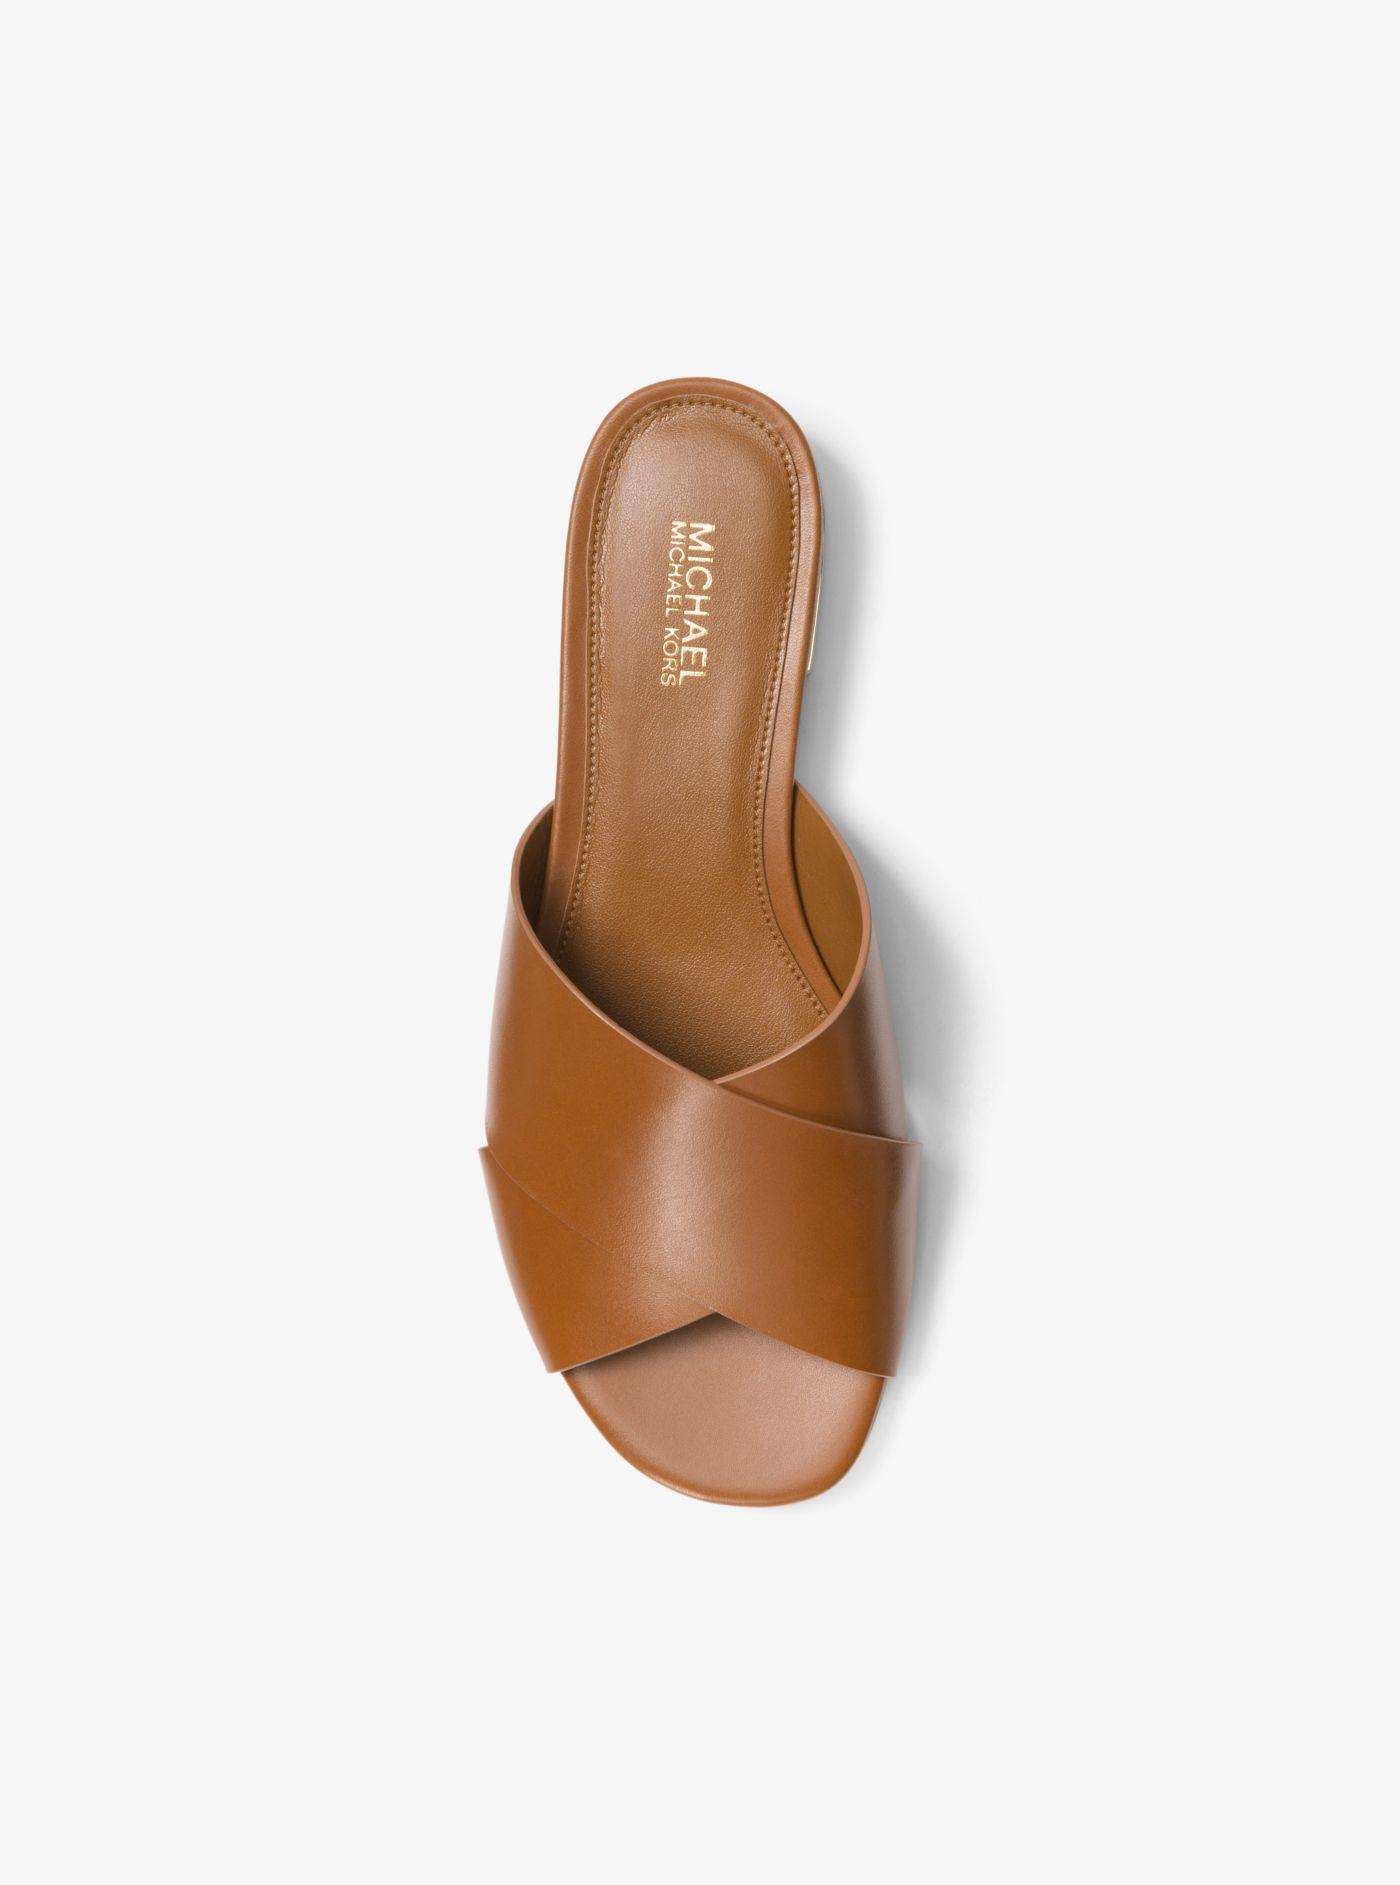 0207bc1e6c31 Lyst - Michael Kors Shelley Leather Slide in Brown